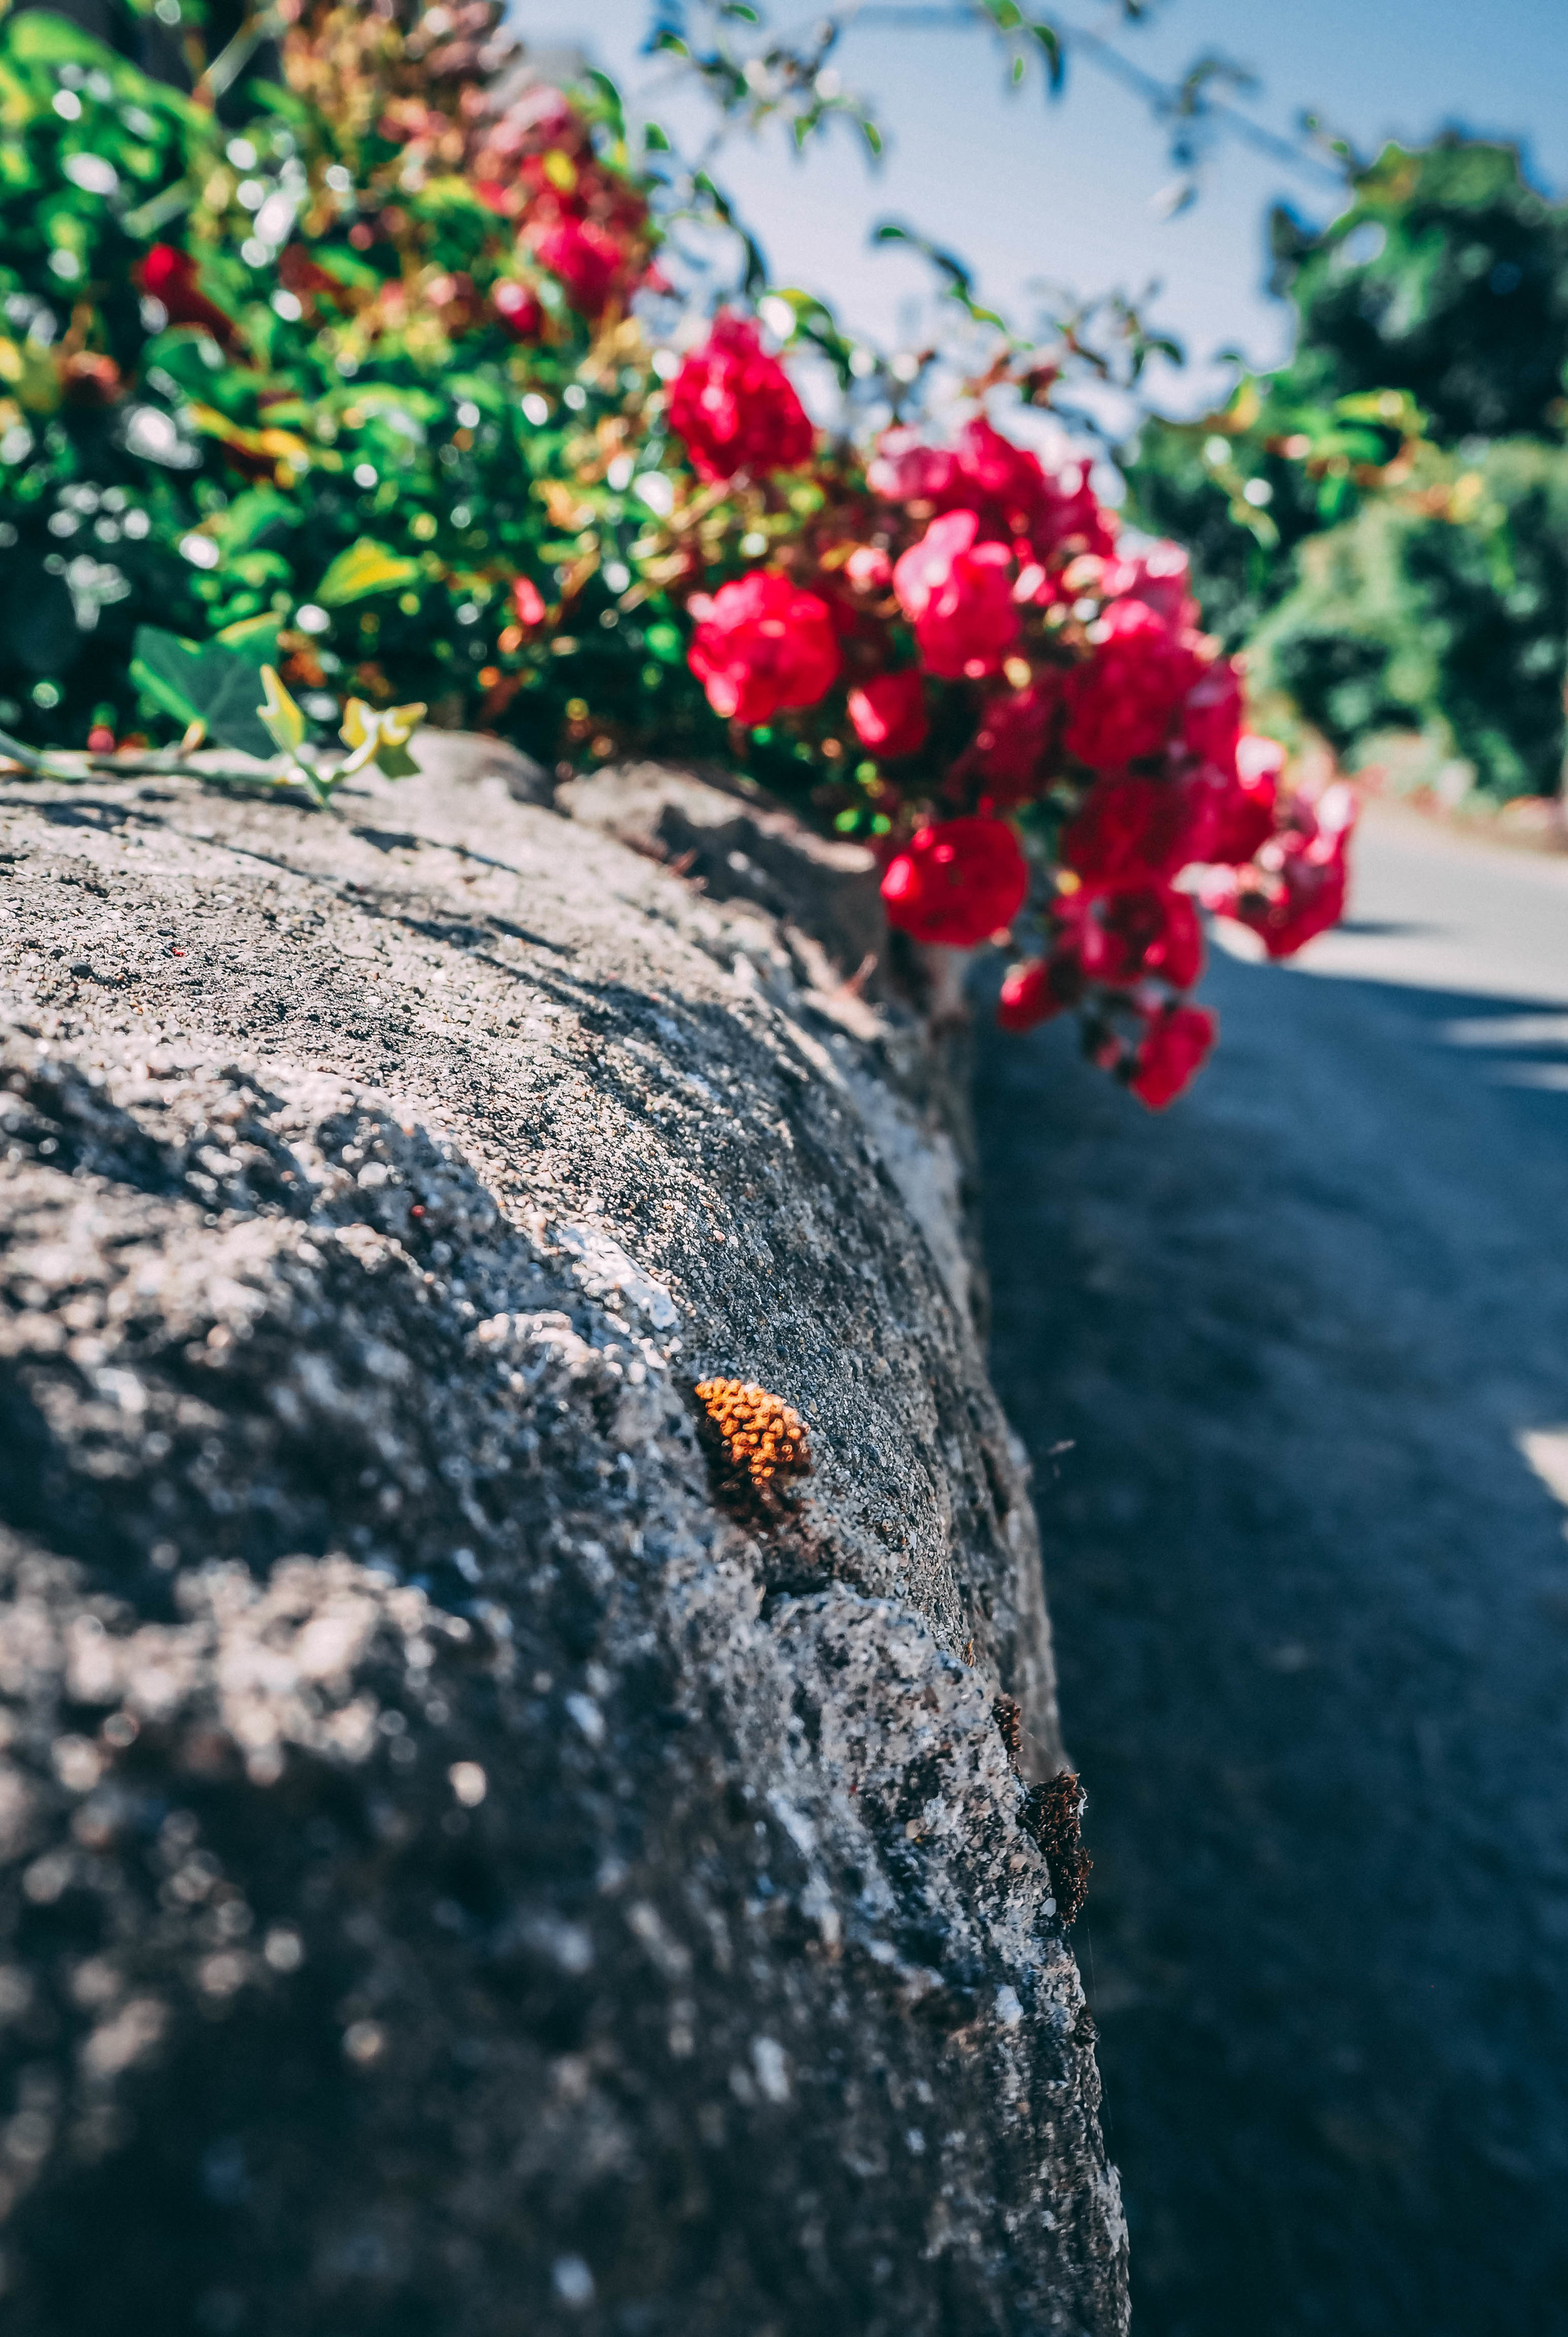 Red Flower on a stone wall.